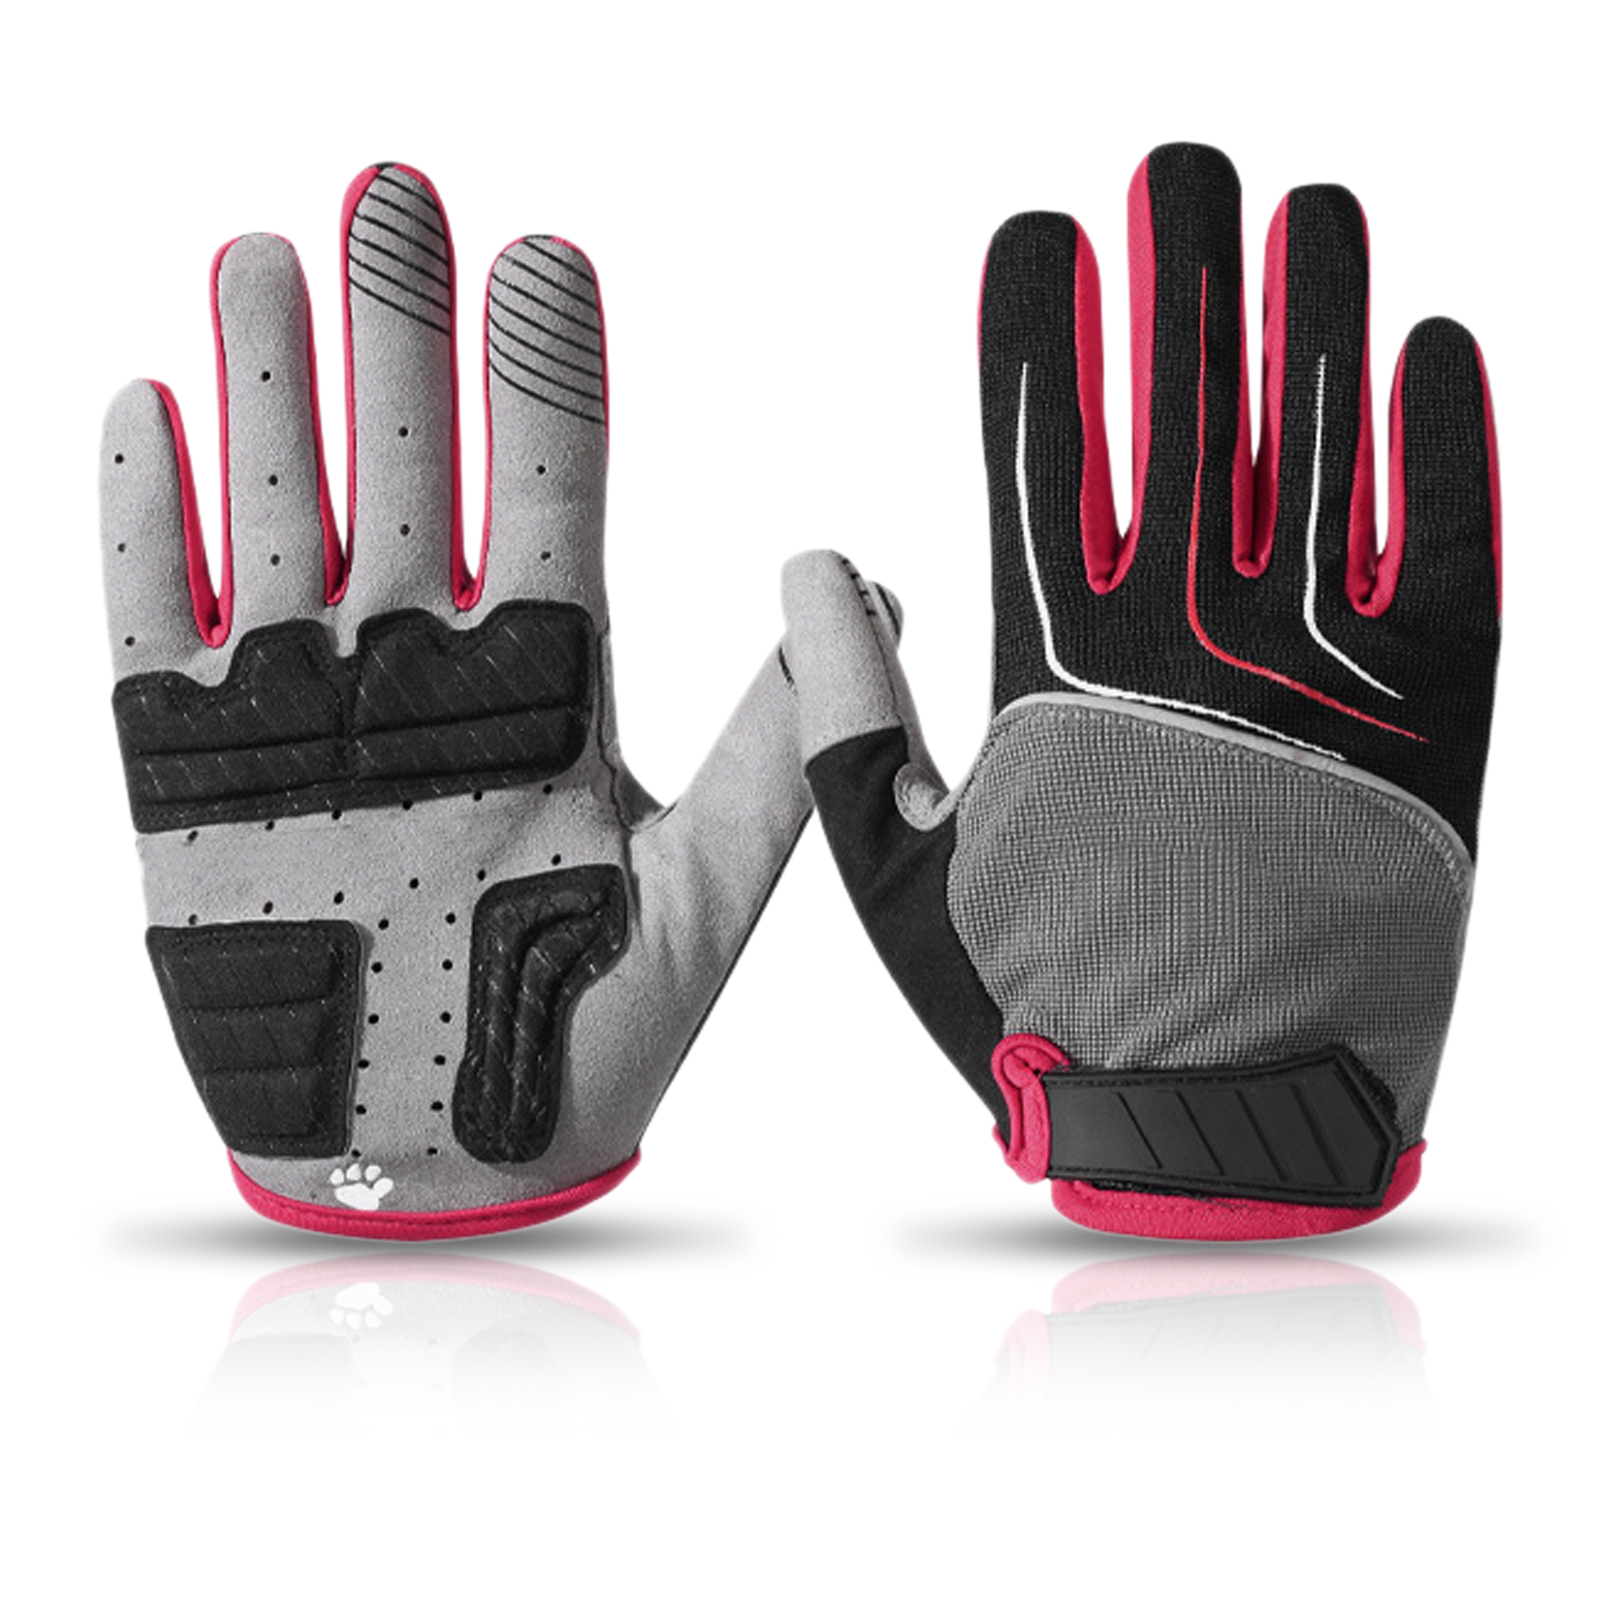 Details about  /Autumn Winter Men Women/'s Cycling Gloves  Outdoor Sports  Bike Bicycle Gloves